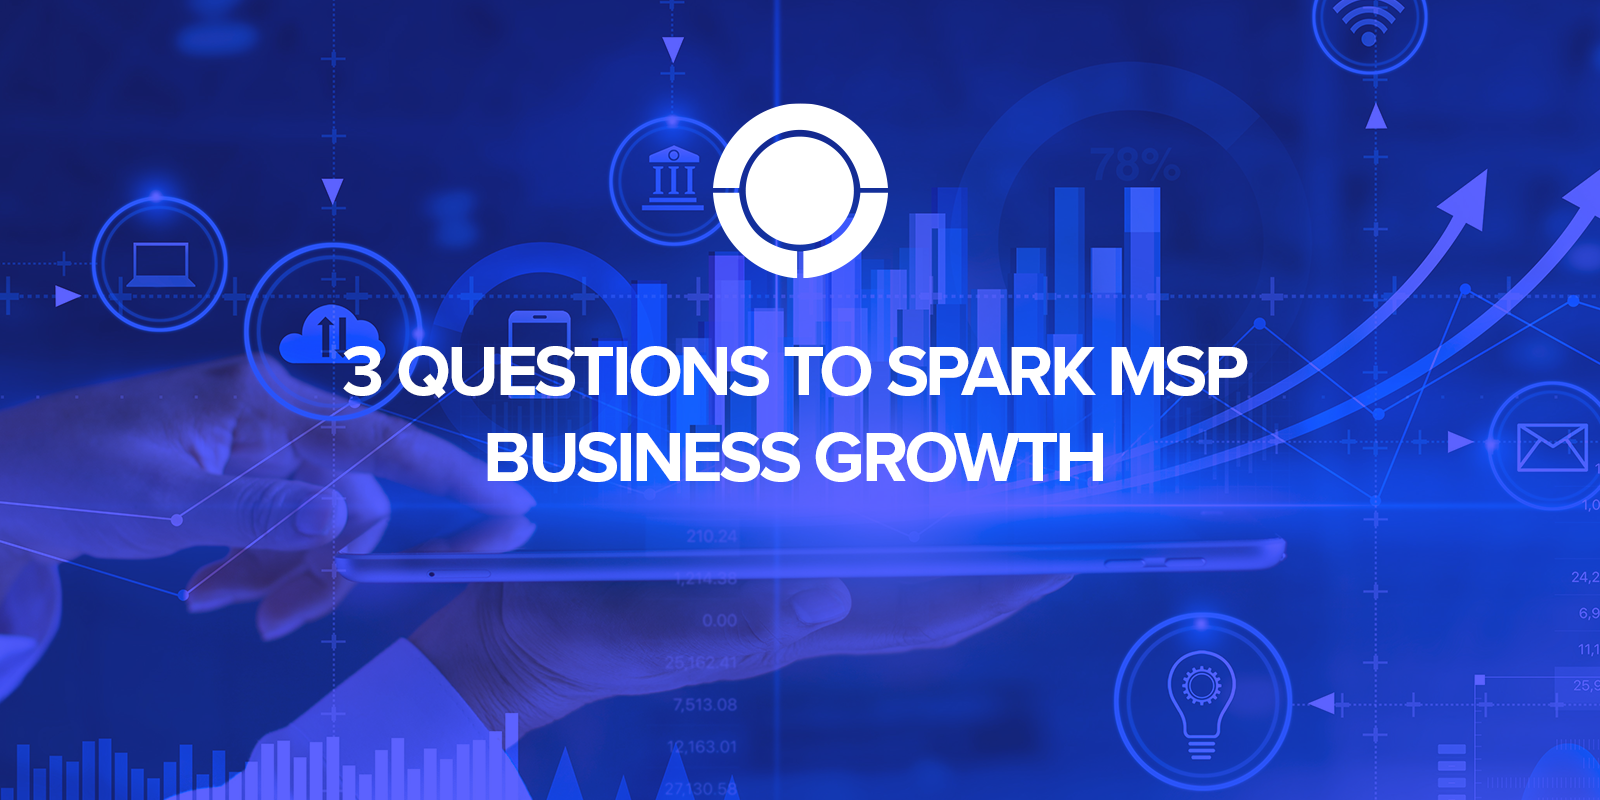 3 Questions to Spark MSP Business Growth